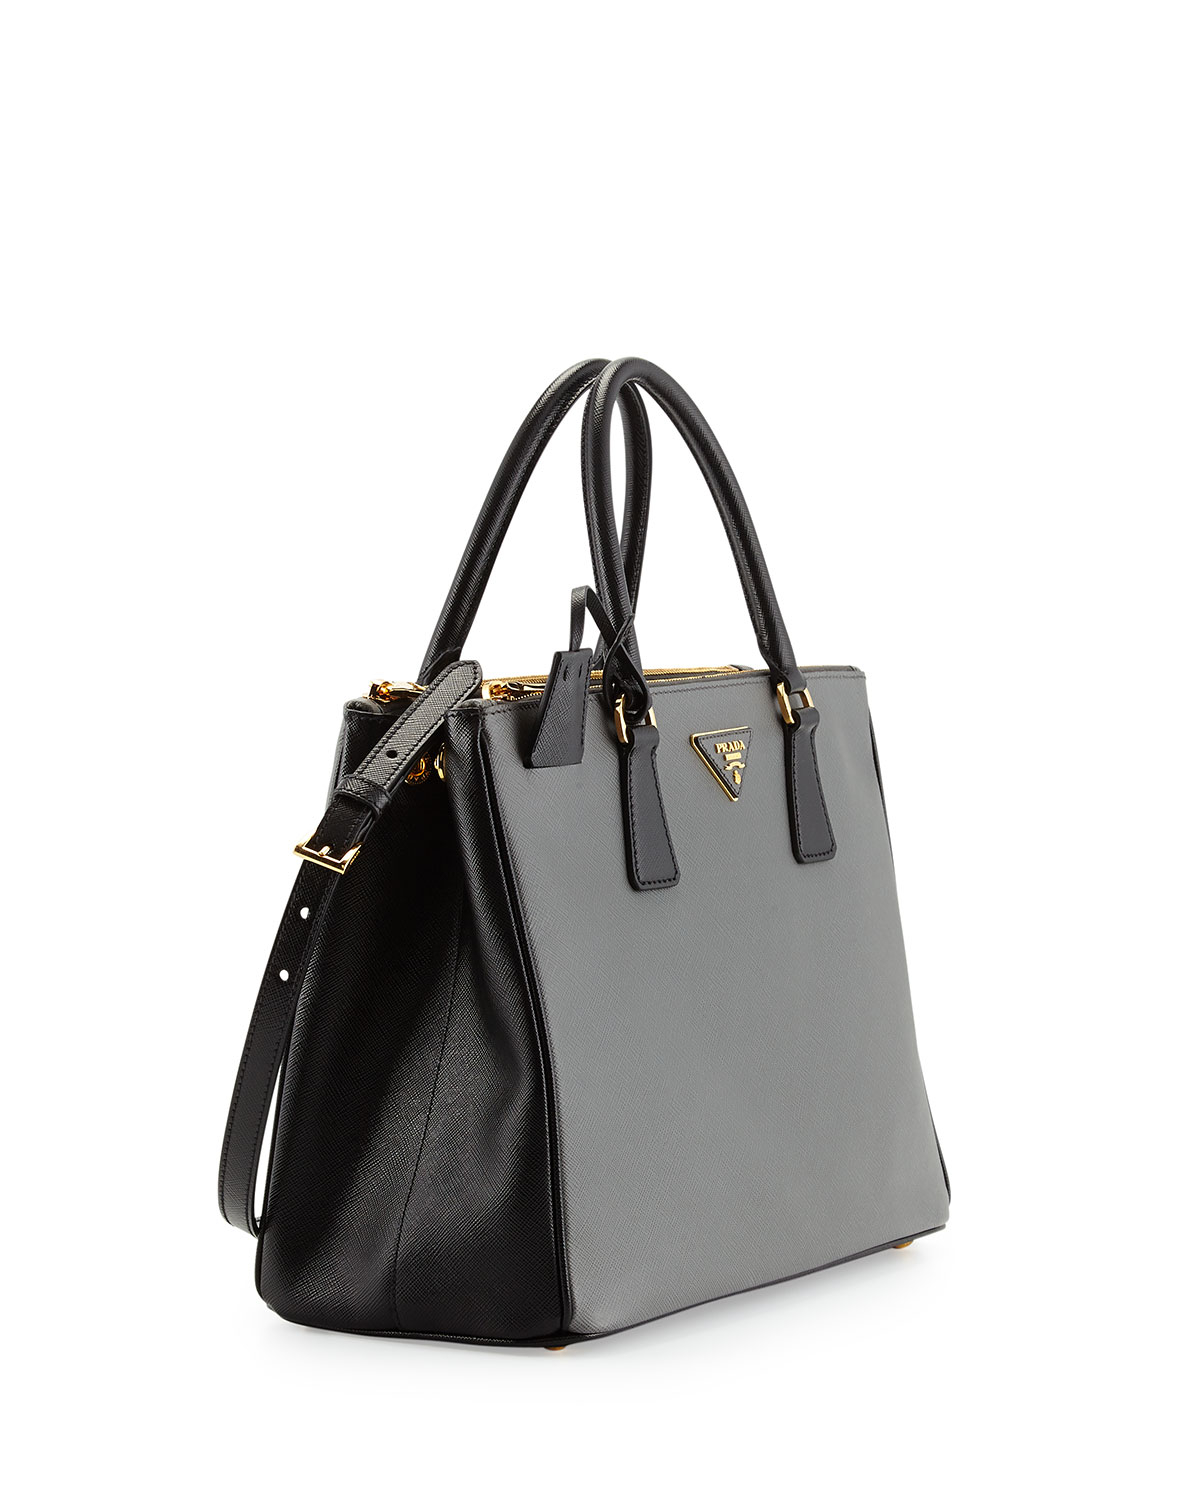 5f19688a1760 ... spain lyst prada saffiano lux bicolor double zip tote bag in gray be3f2  bd78b ...